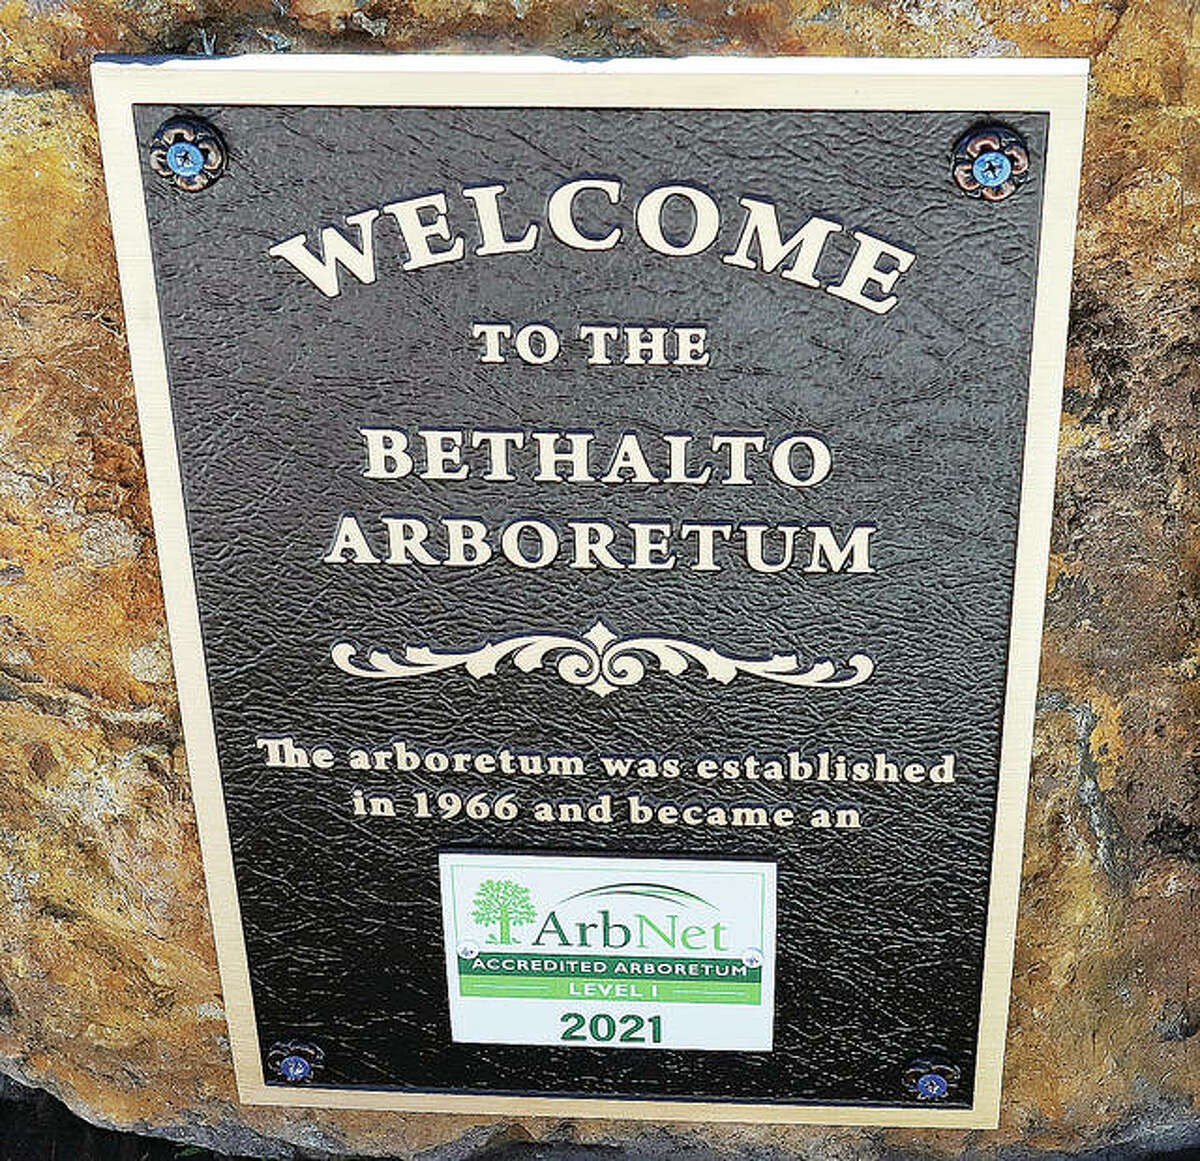 A plaque has been posted near the arboretum's entrance announcing the its new accredidation.